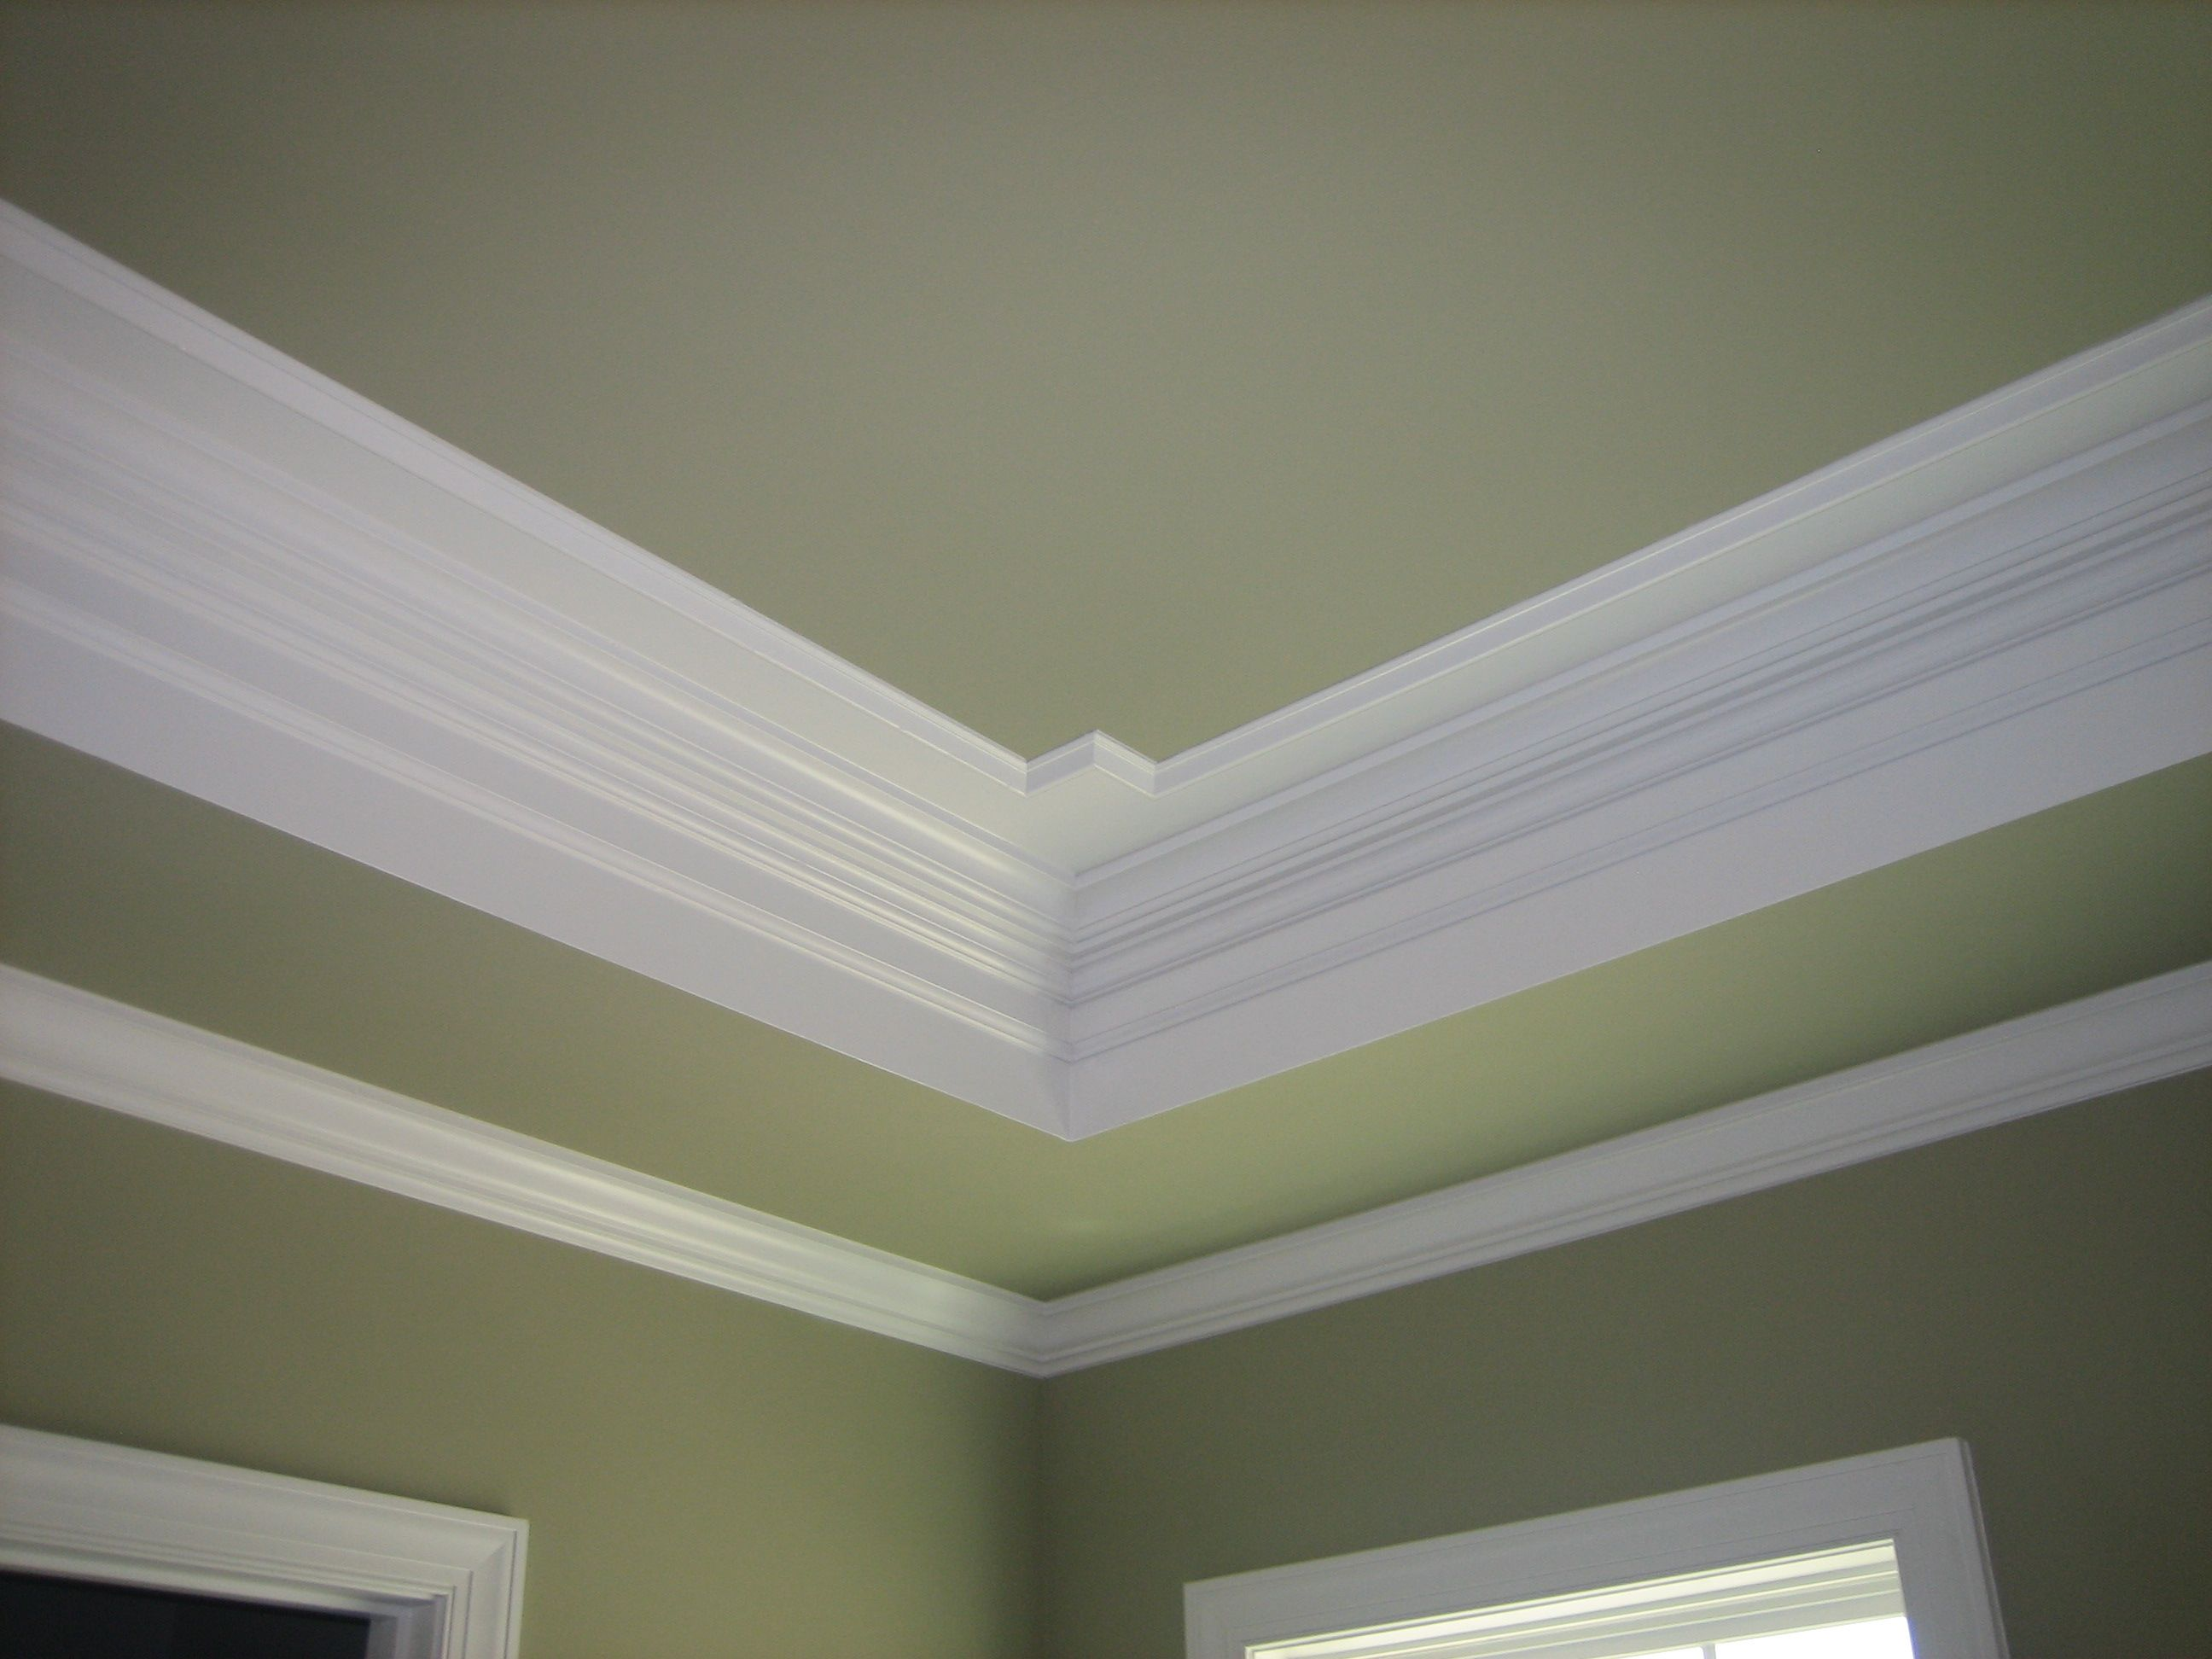 Tray Ceiling Molding: Tray Ceilings With Crown Molding